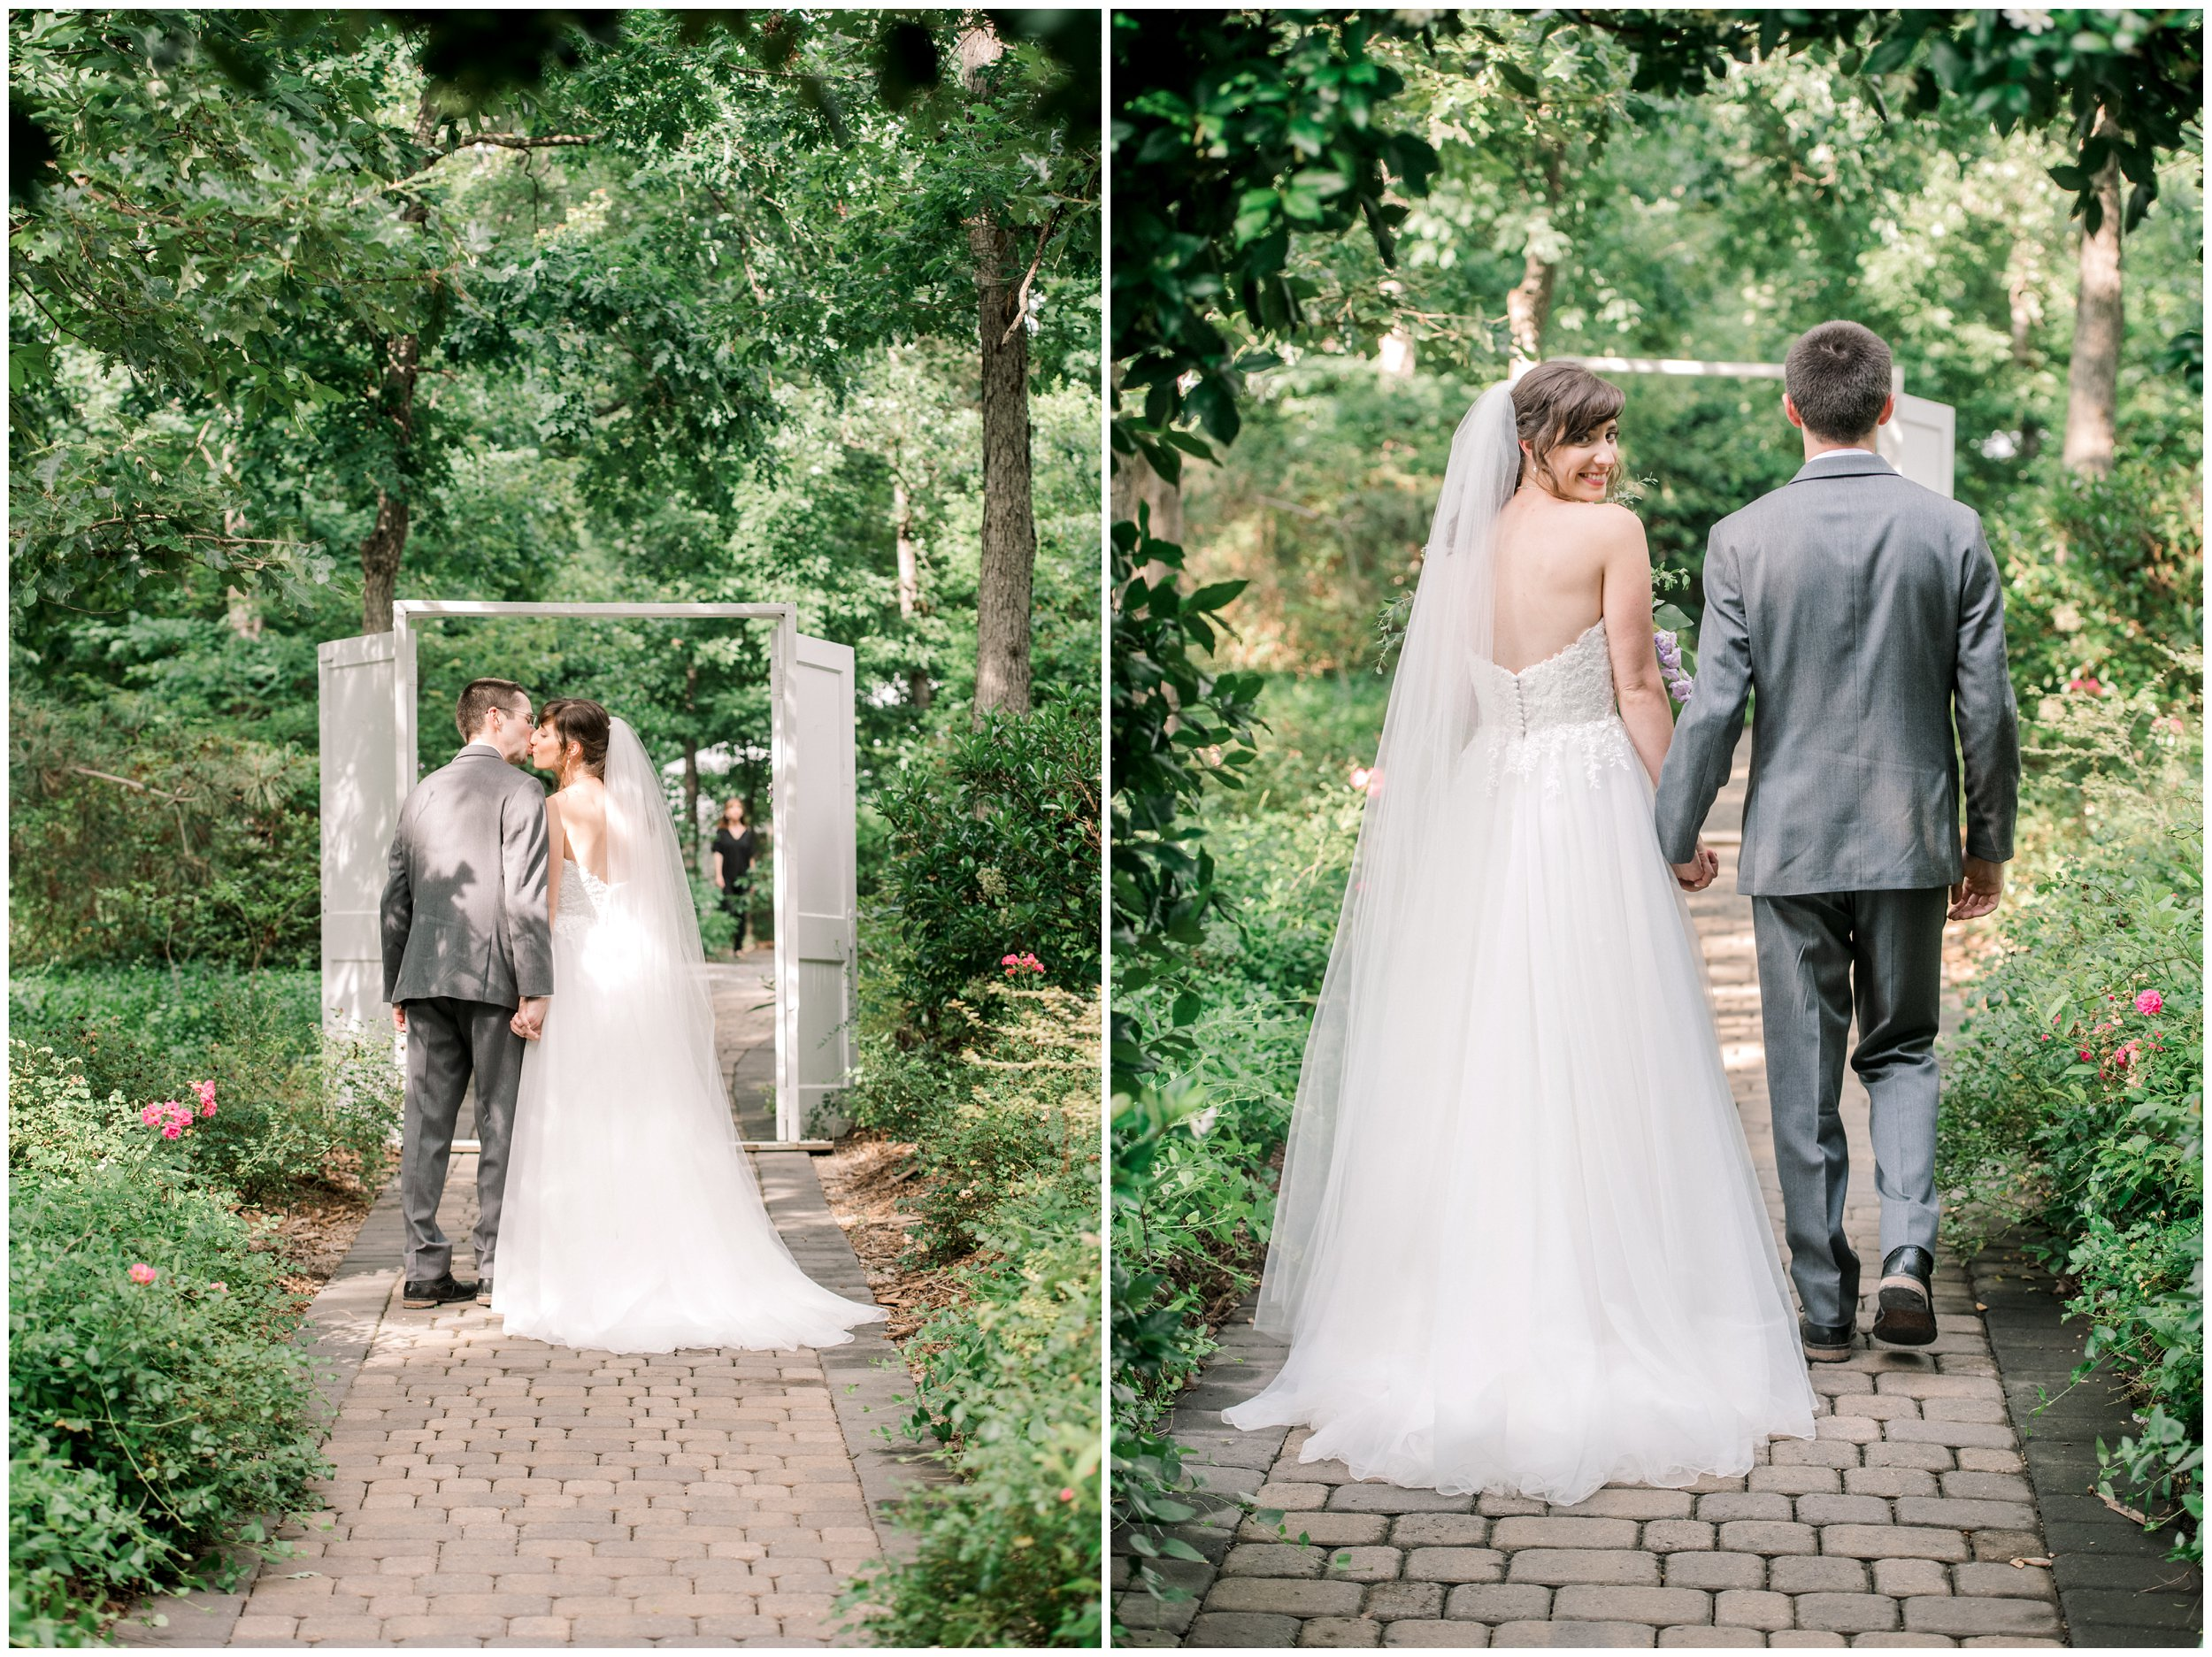 pictures of bride and groom after wedding